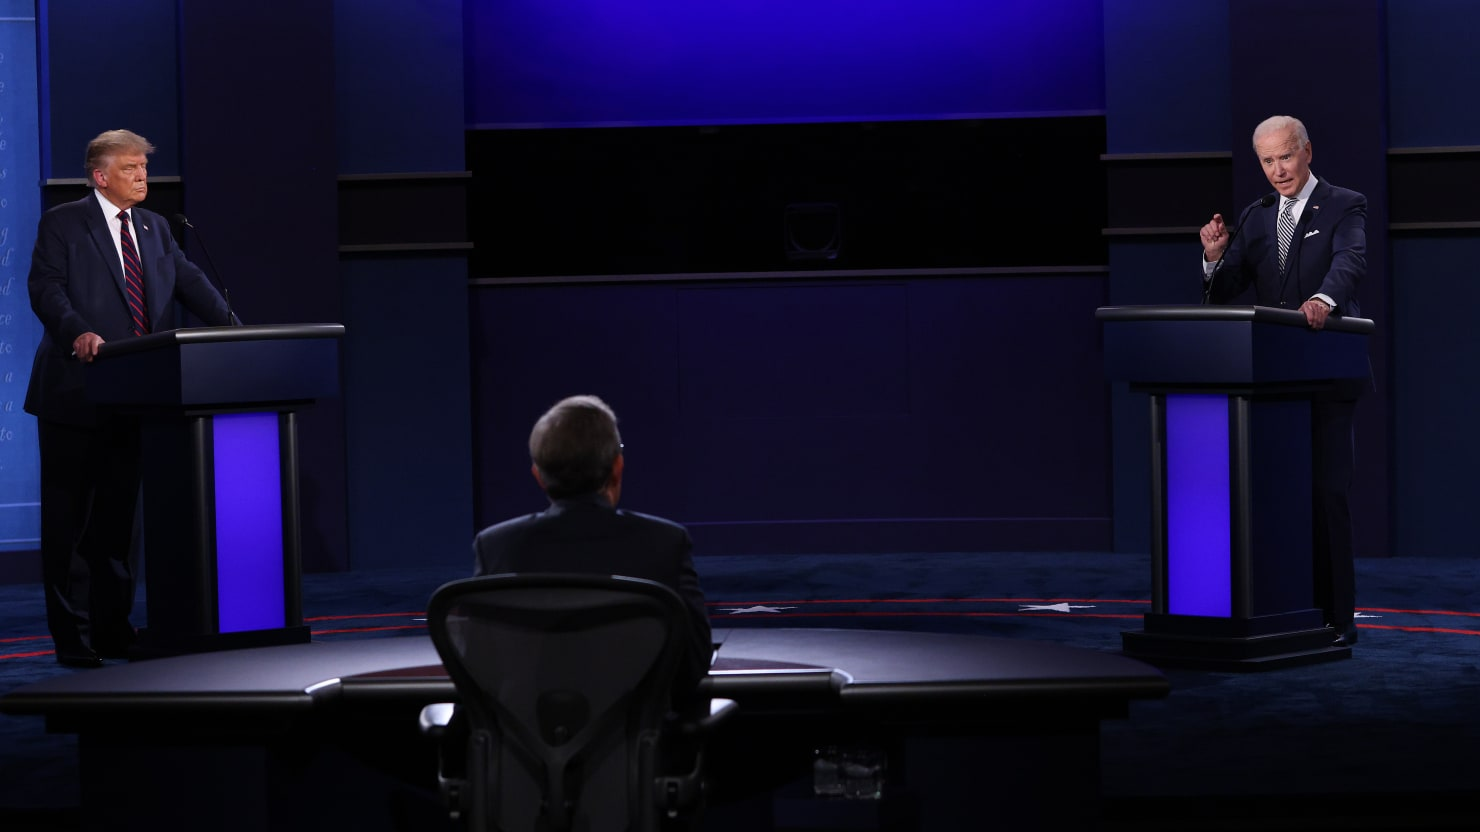 Presidential Debate Format Will Be Revised After Trump's Interruptions